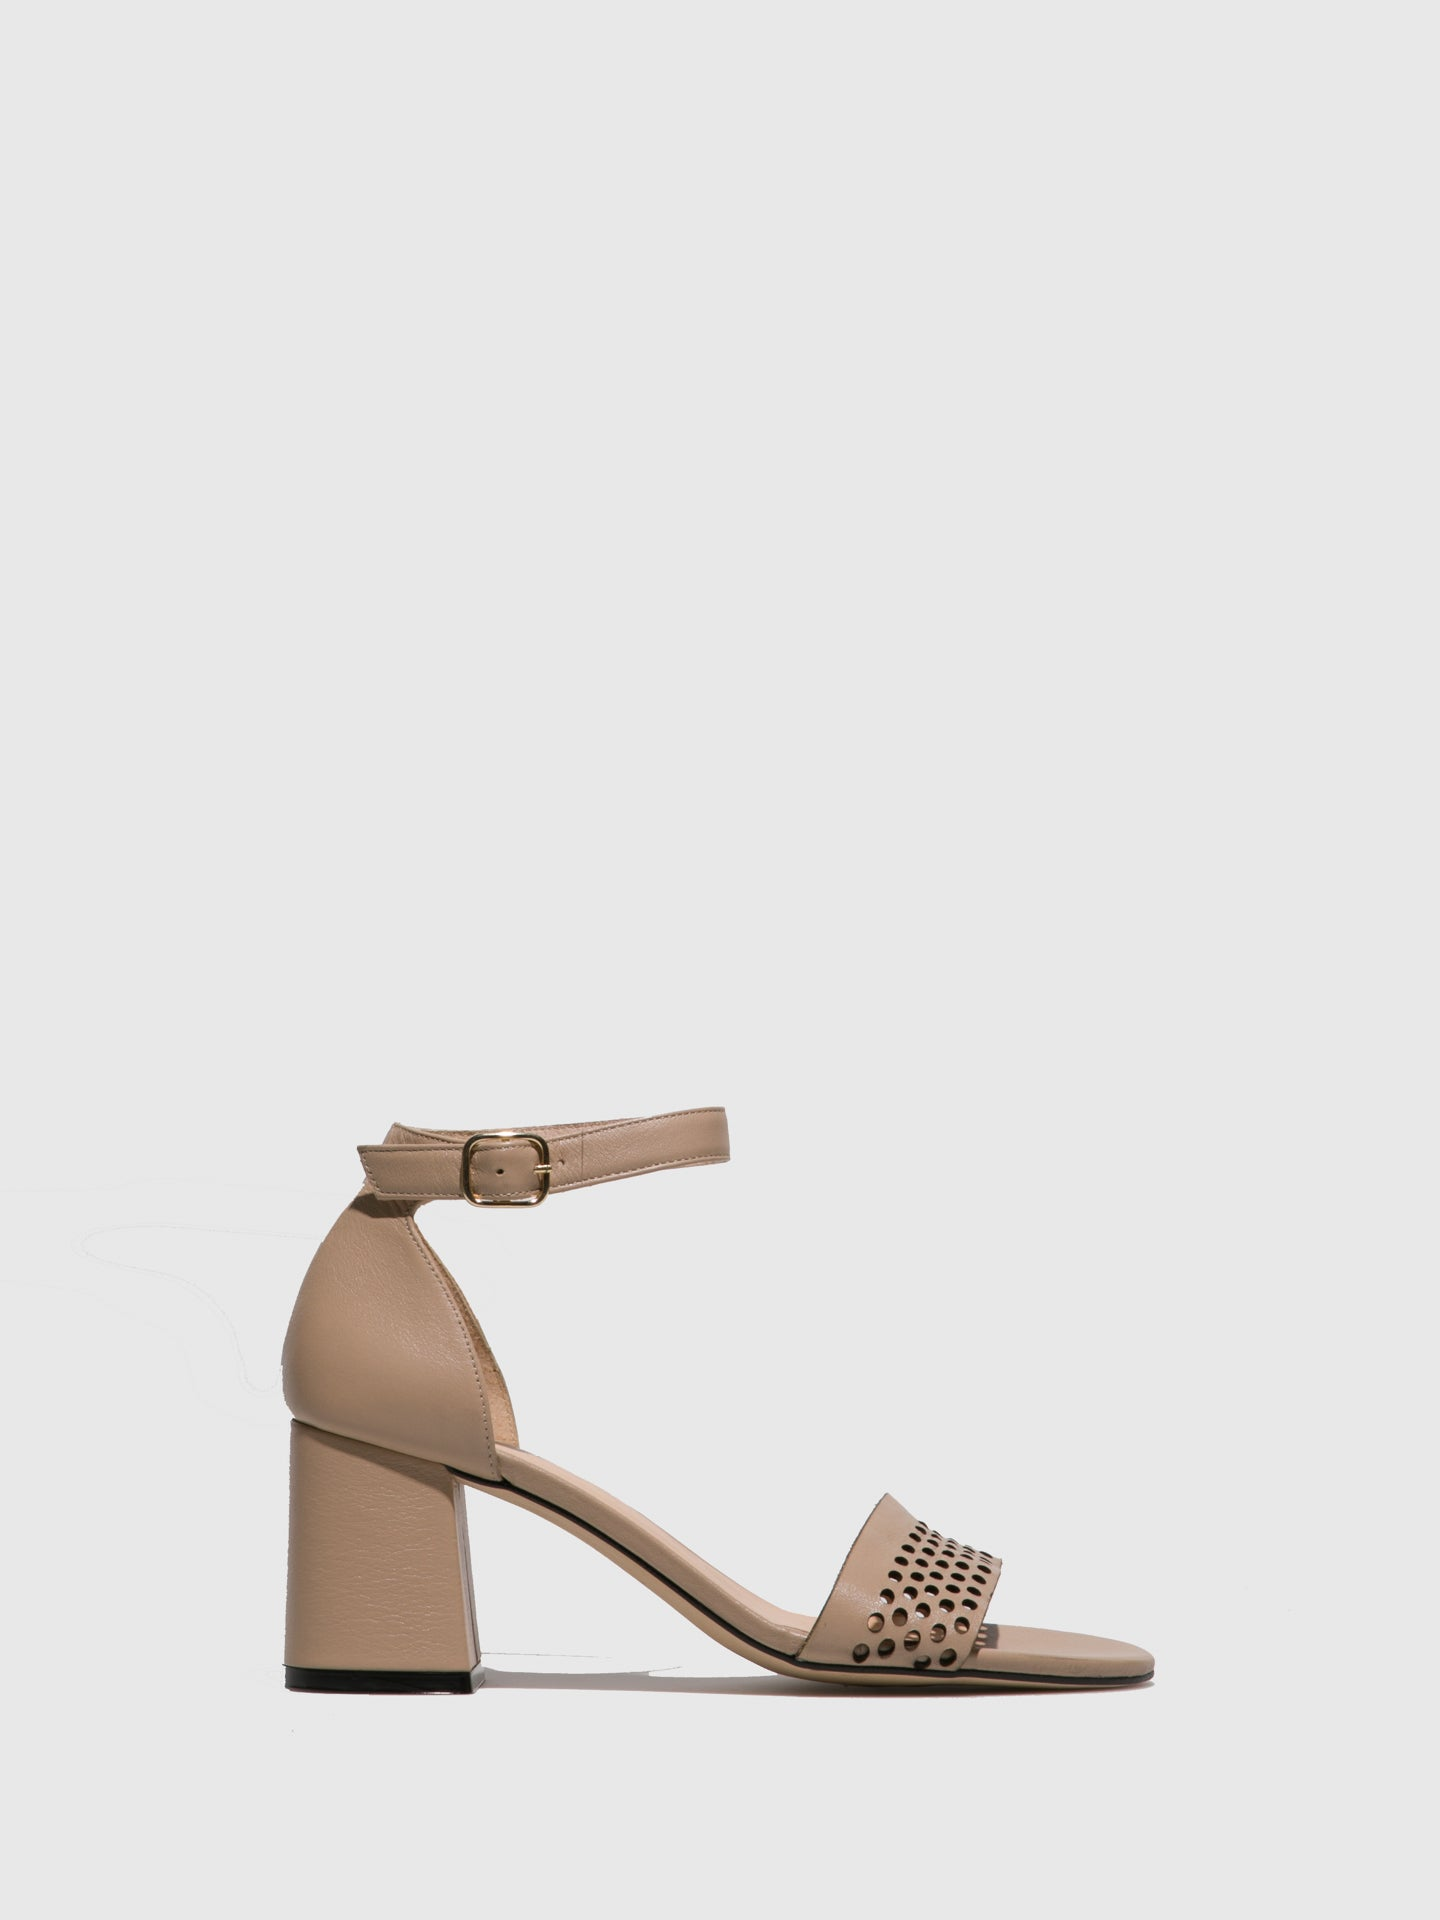 Sofia Costa Beige Ankle Strap Sandals